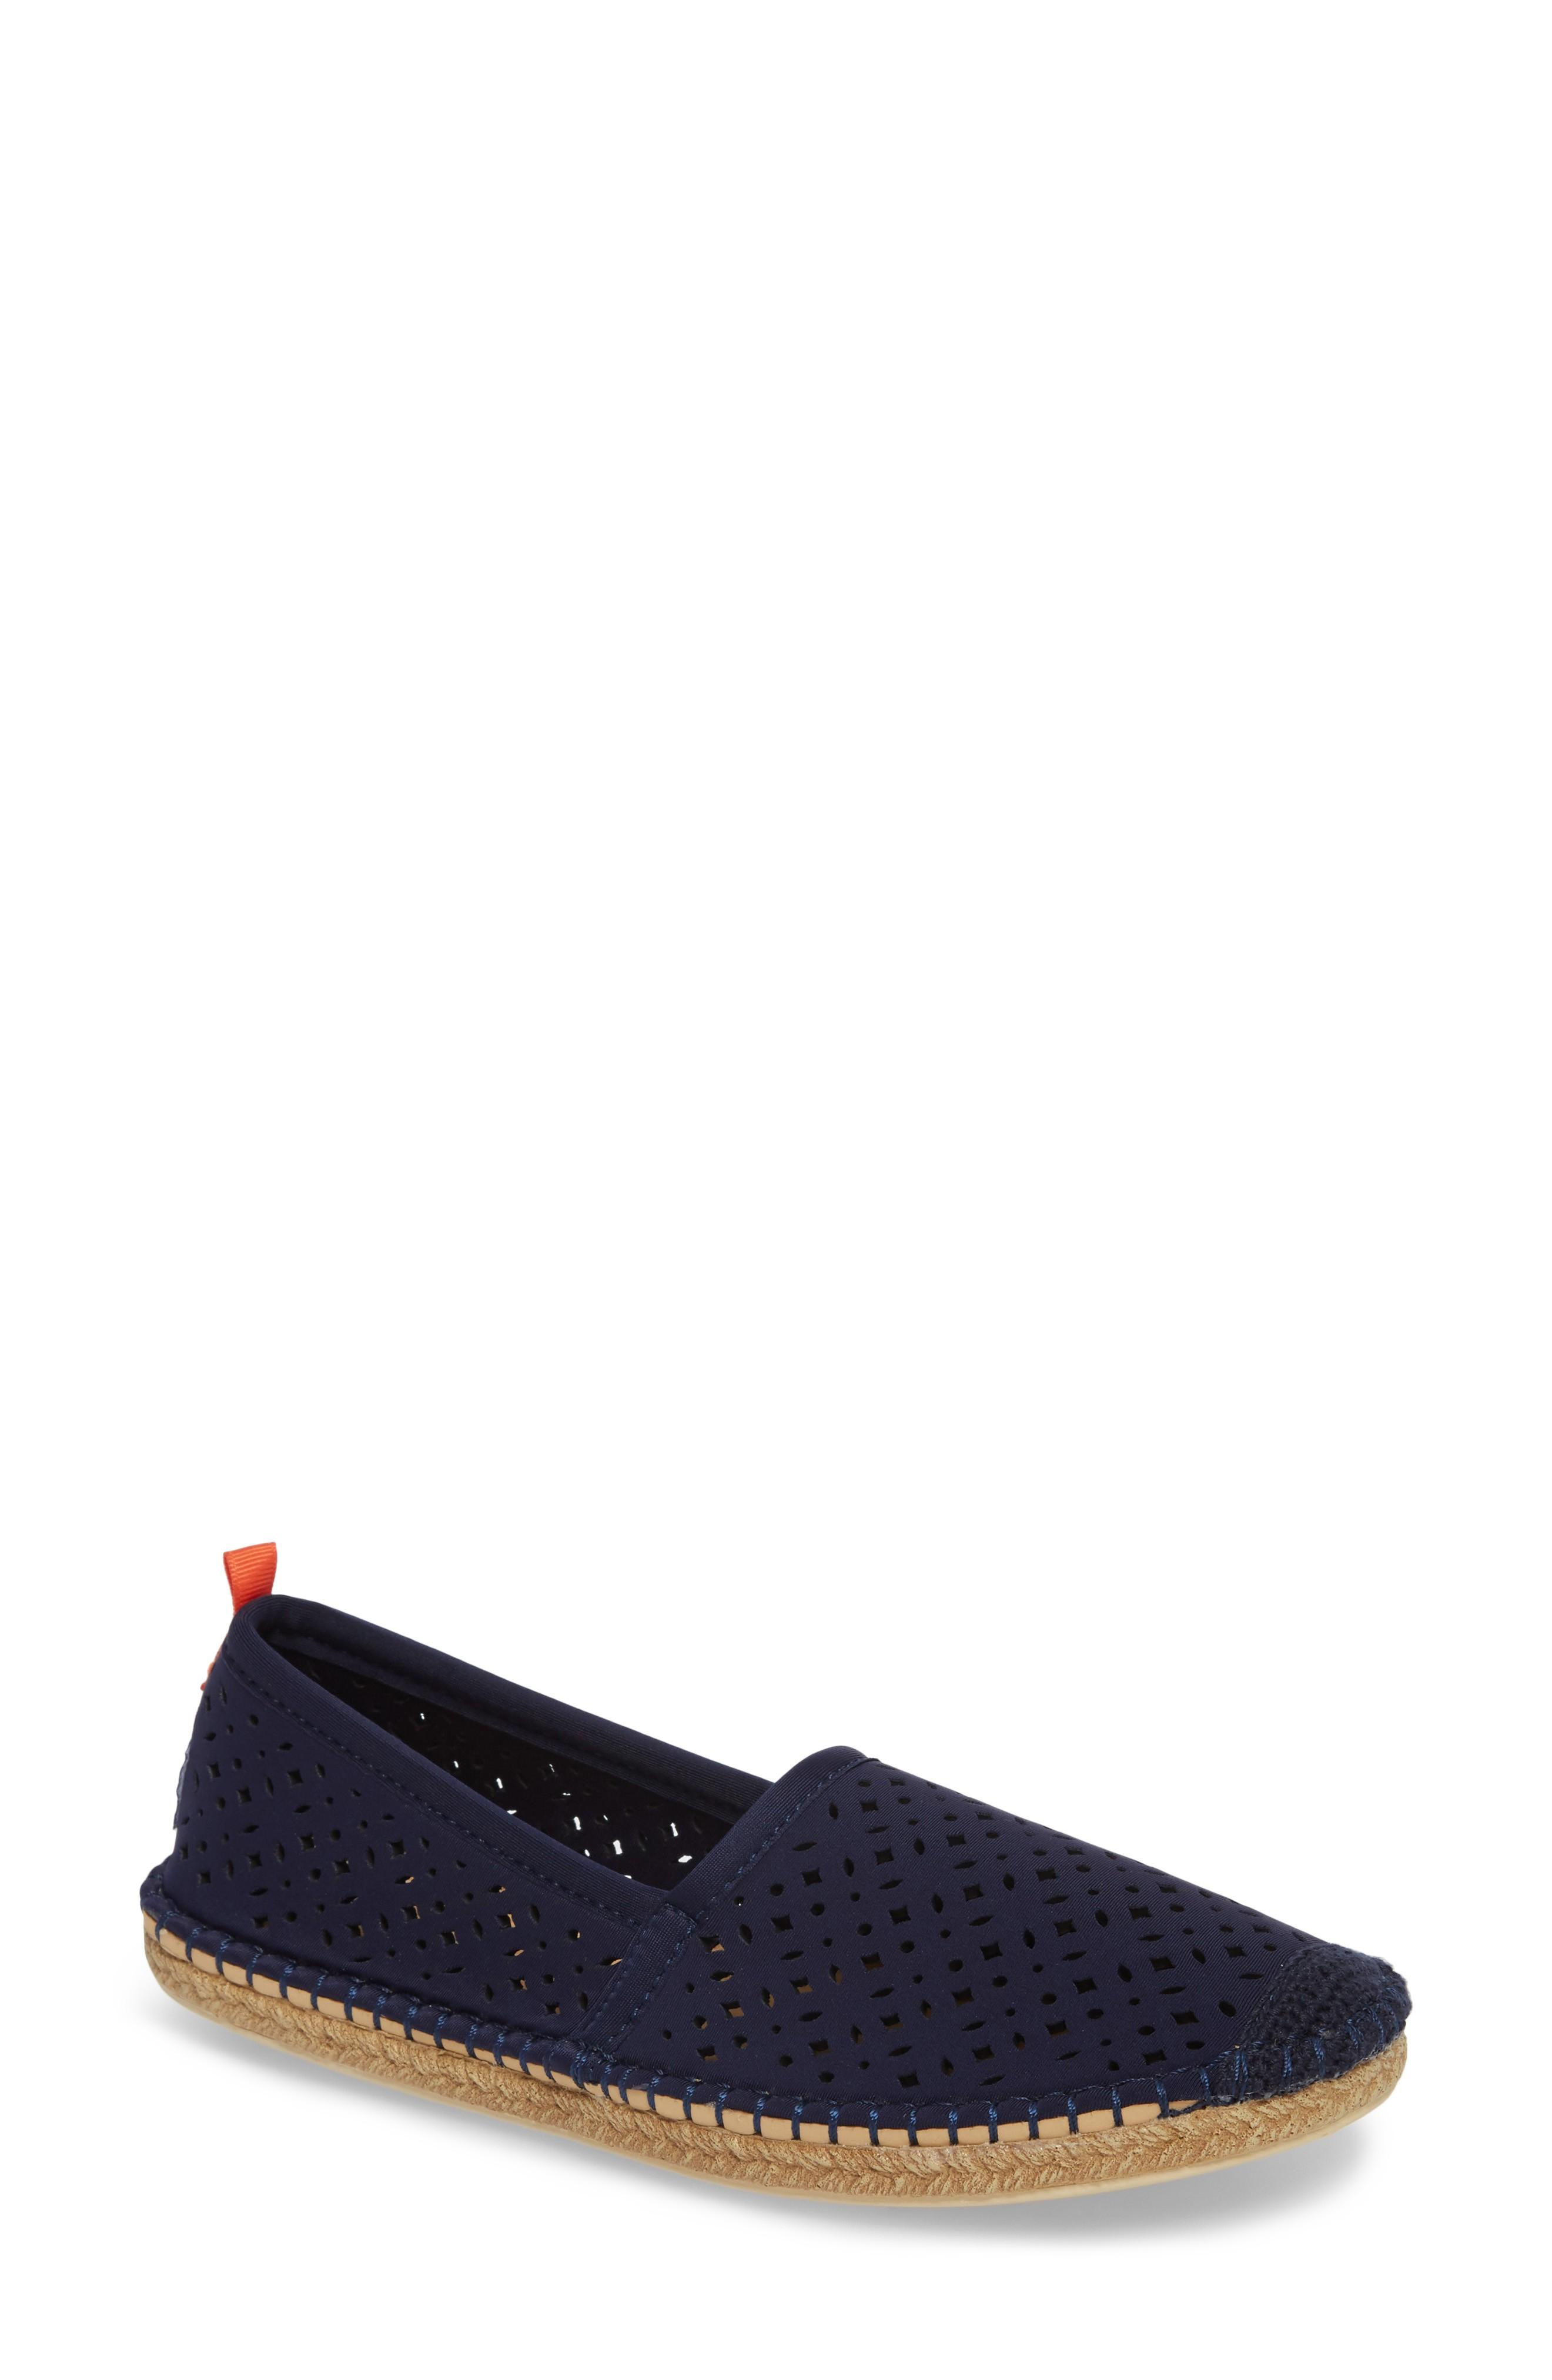 4f42c079fc1a Sea Star Beachwear Sea Star Beachcomber Espadrille Sandal In Dark Navy  Eyelet